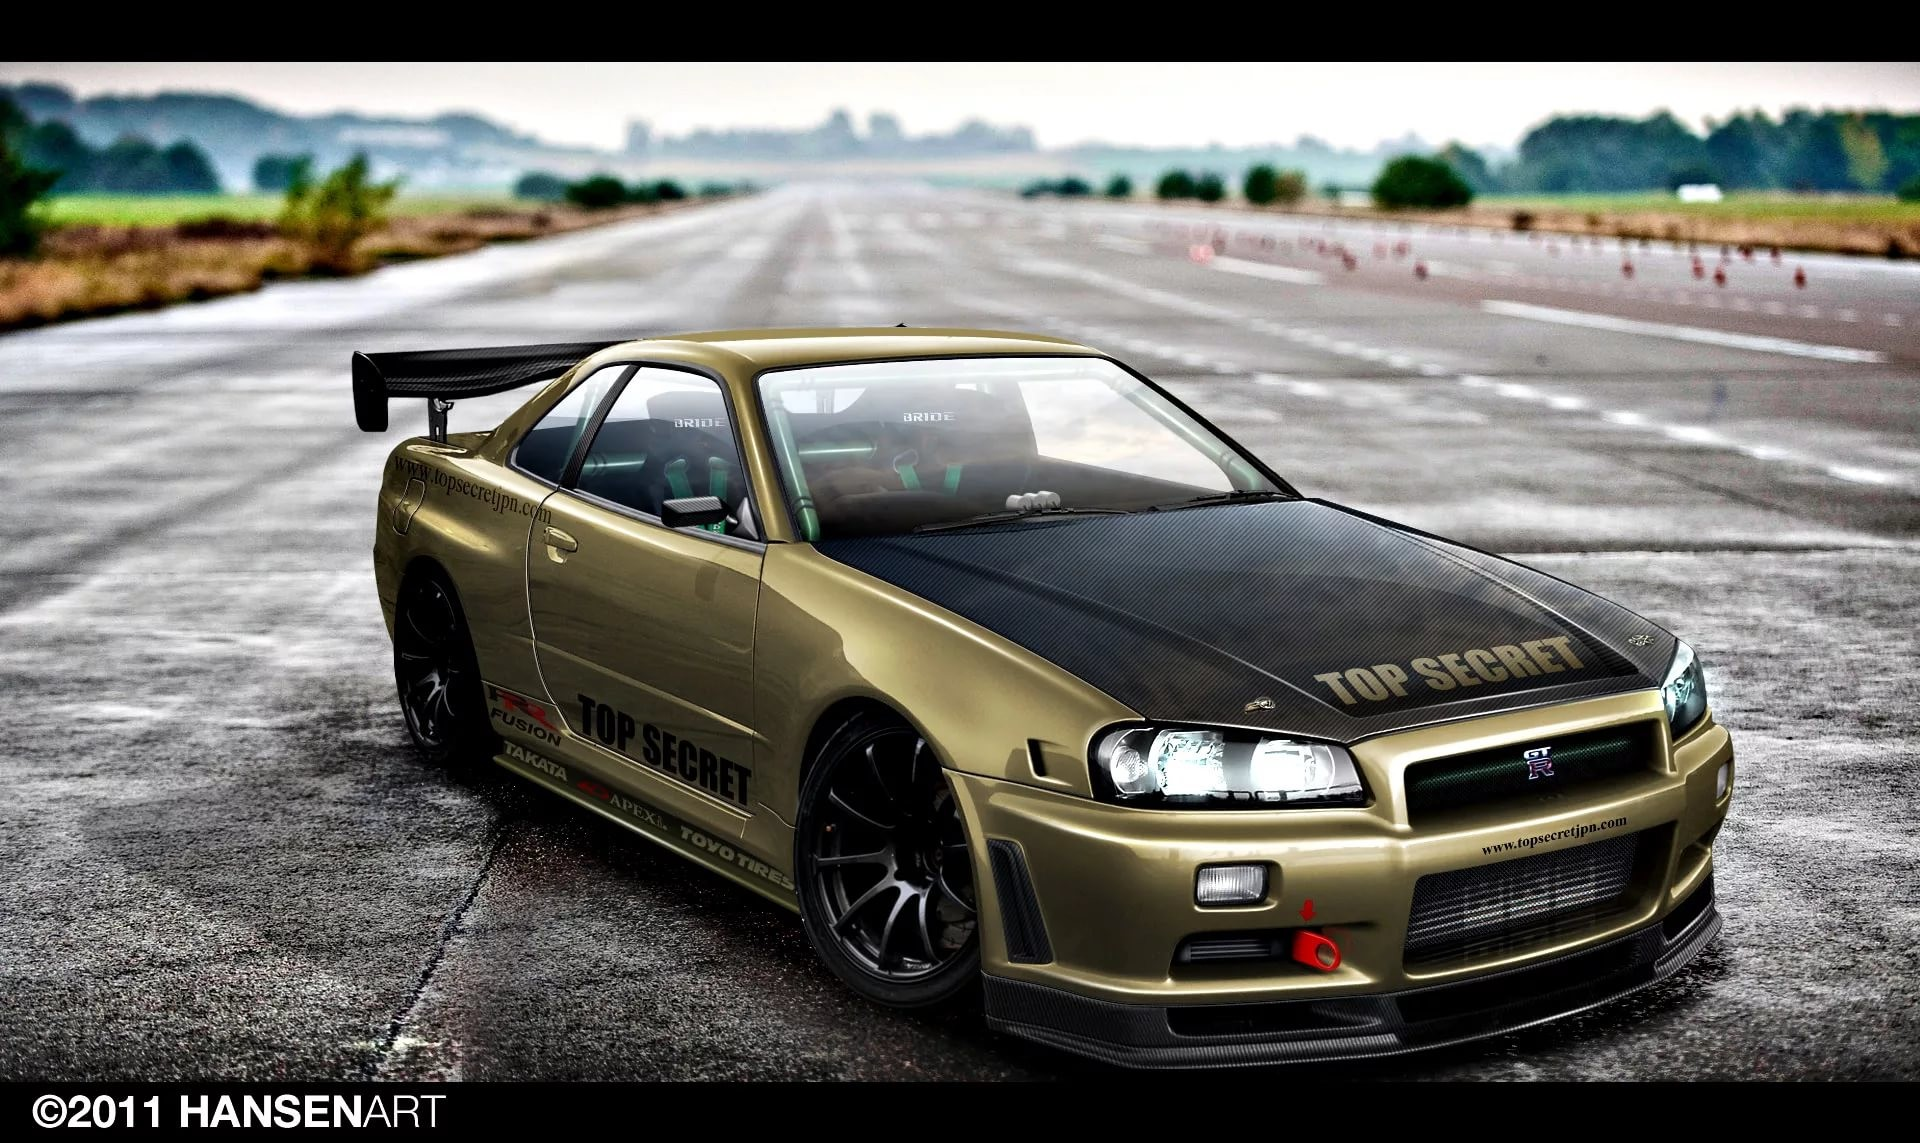 Nissan Skyline Wallpapers Hd Wallpaper Collections 4kwallpaper